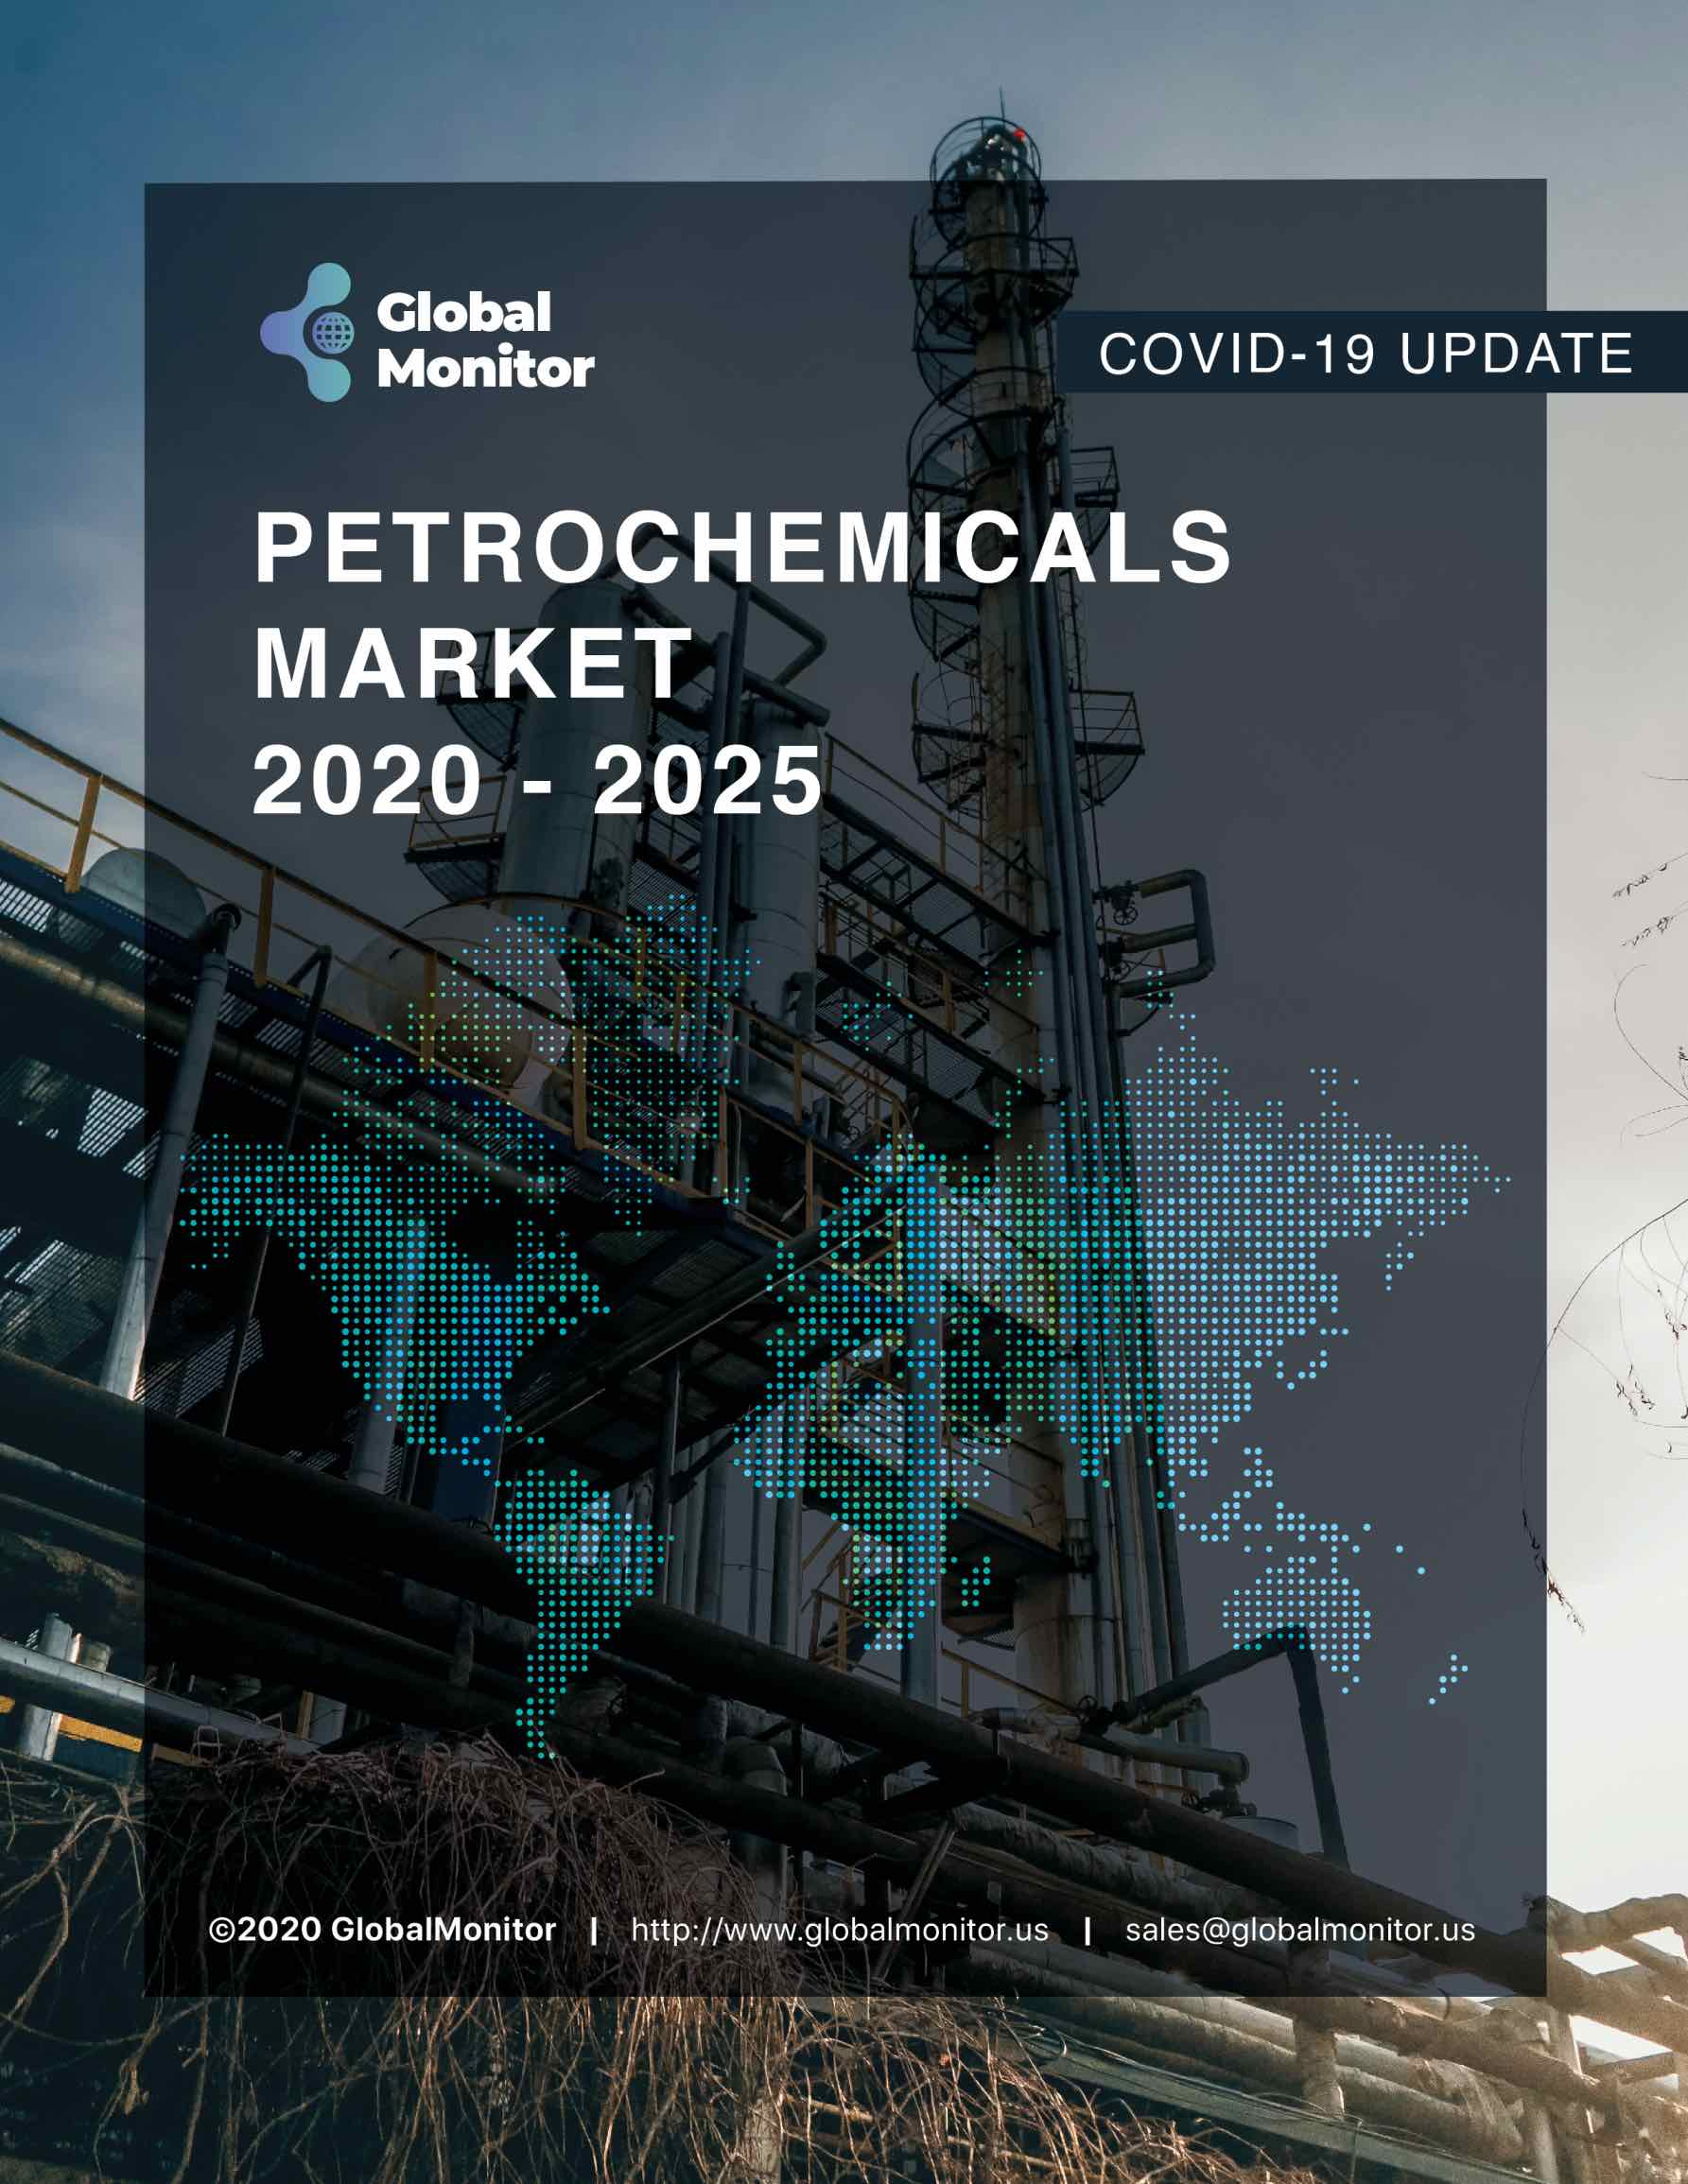 Taiwan Petrochemicals Market Report With COVID-19 Analysis (2020-2025)